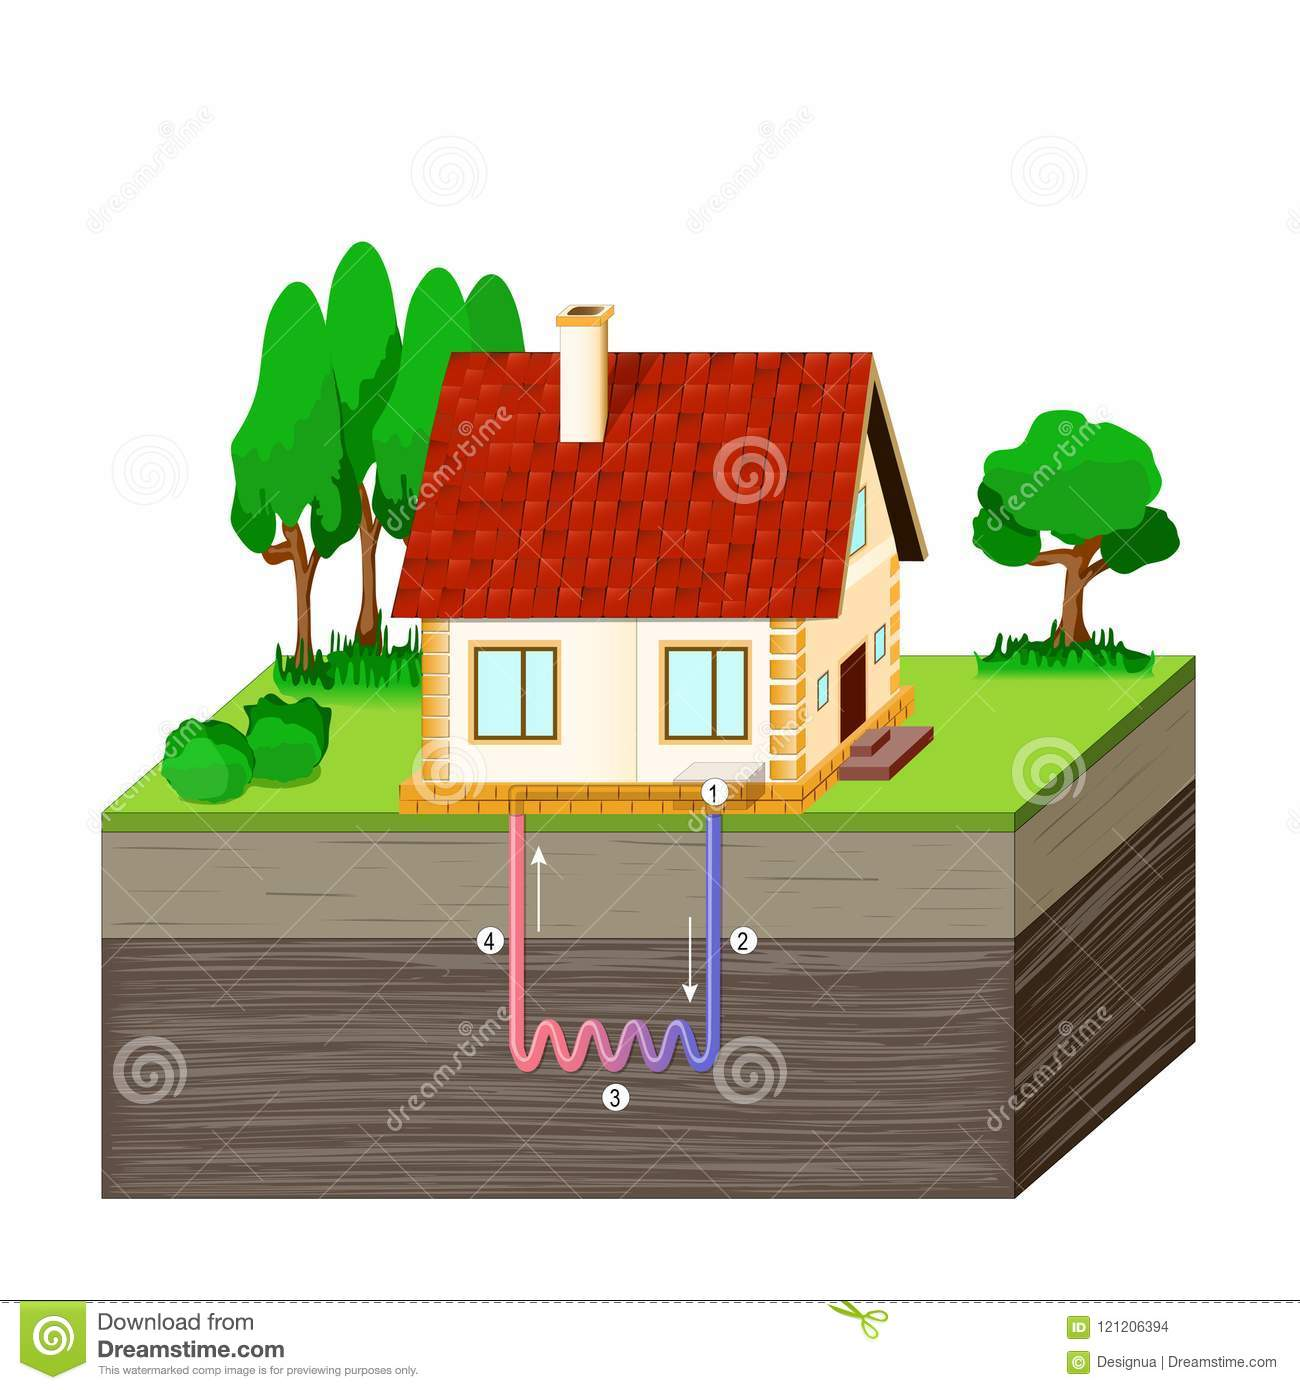 hight resolution of diagram of a house receiving geothermal energy heat pump or cooling system vector illustration